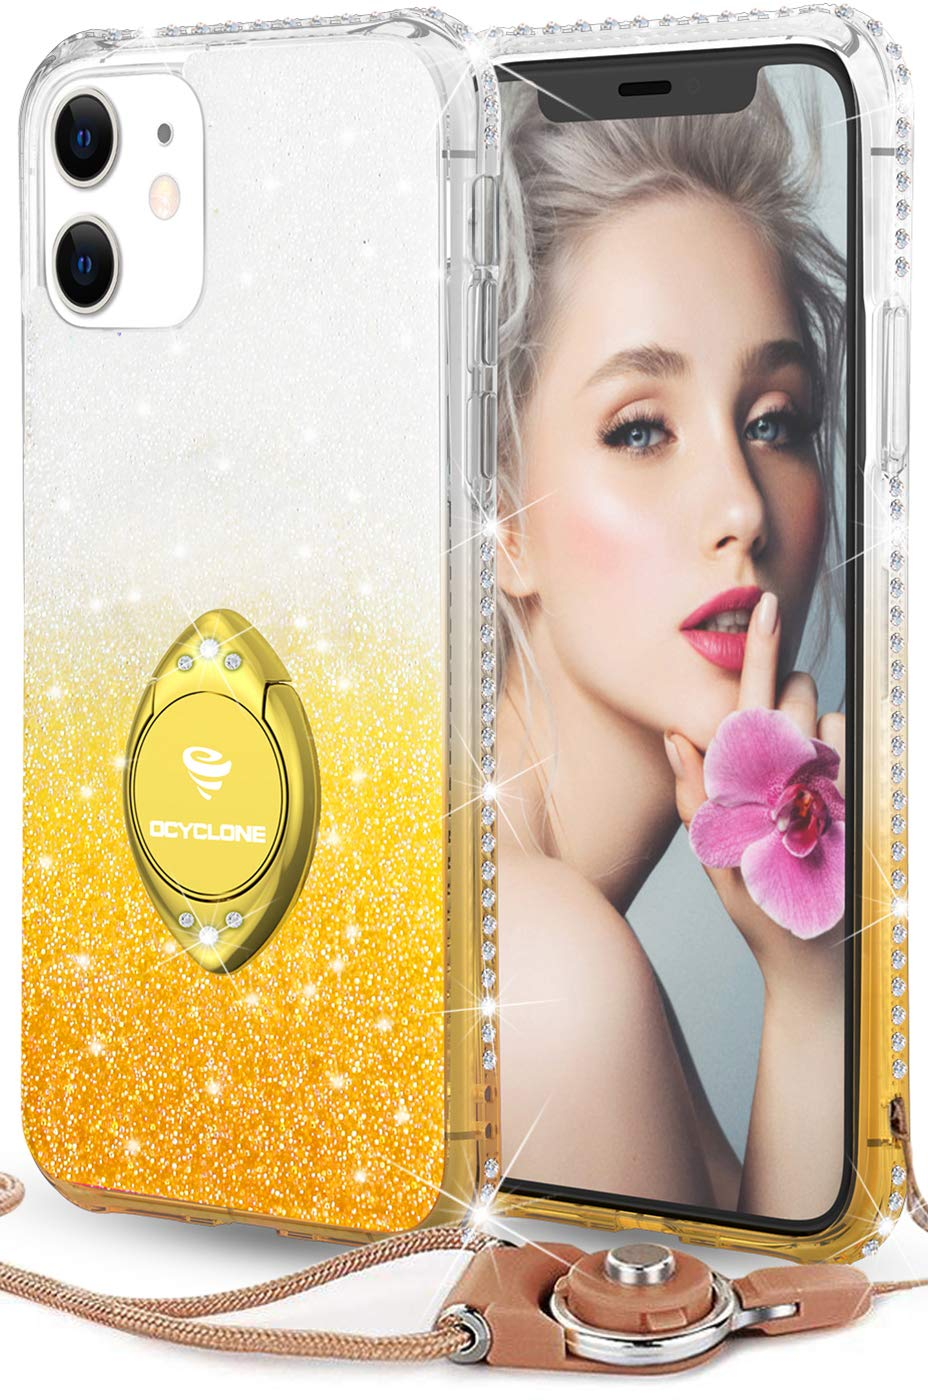 OCYCLONE Glitter iPhone 11 Case, Full Body Luxury Cute Bling Diamond Rhinestone with Ring Grip Kickstand Soft Thin Girly Protective Phone Case for Women Girl iPhone 11 Case [6.1 inch], Gradient Gold